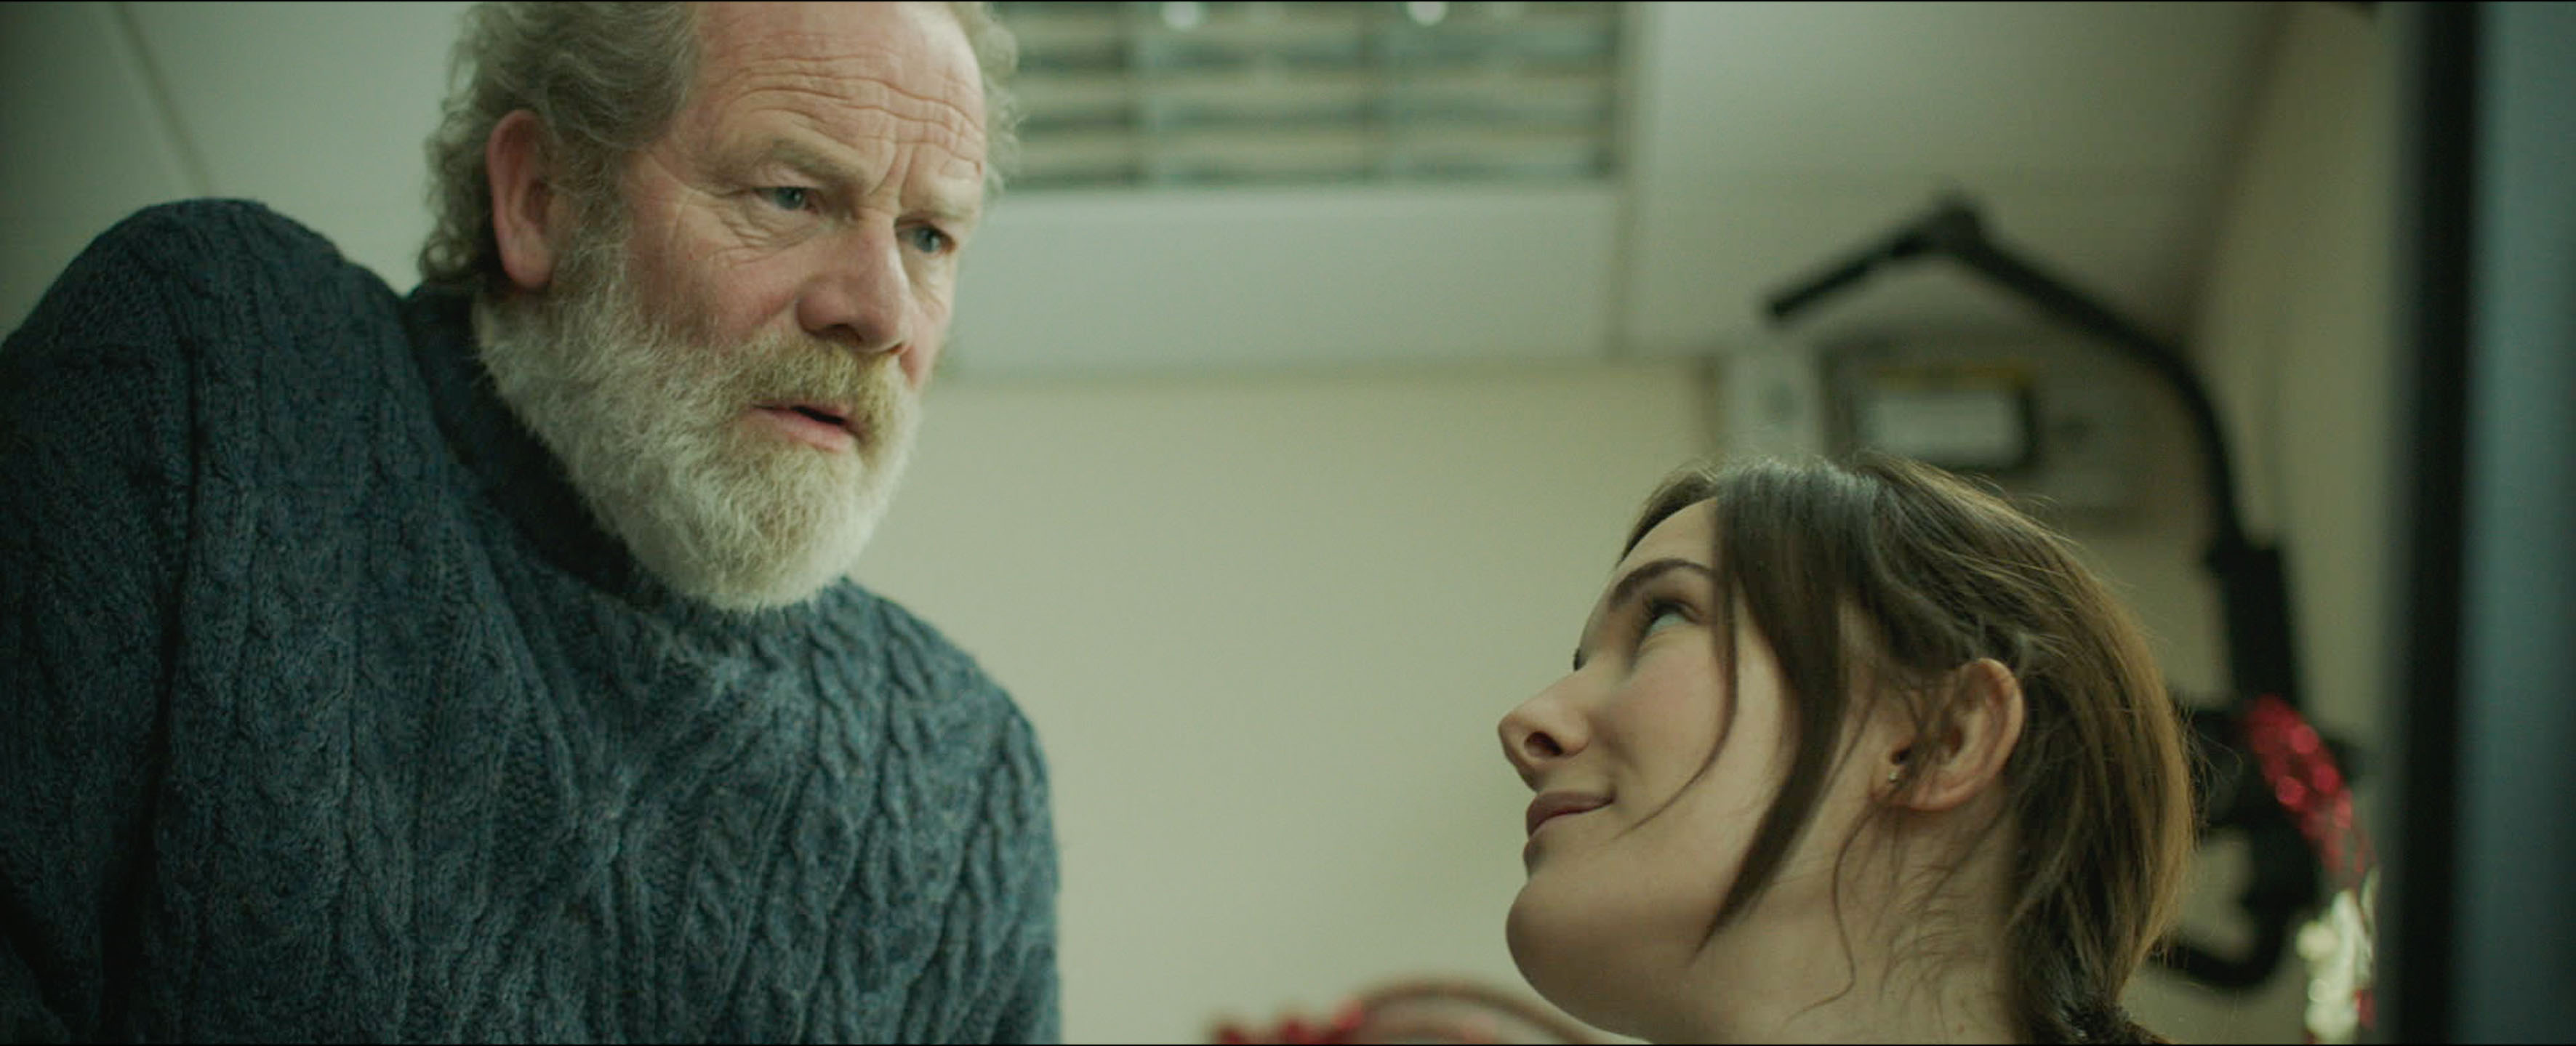 Peter Mullan in Hector